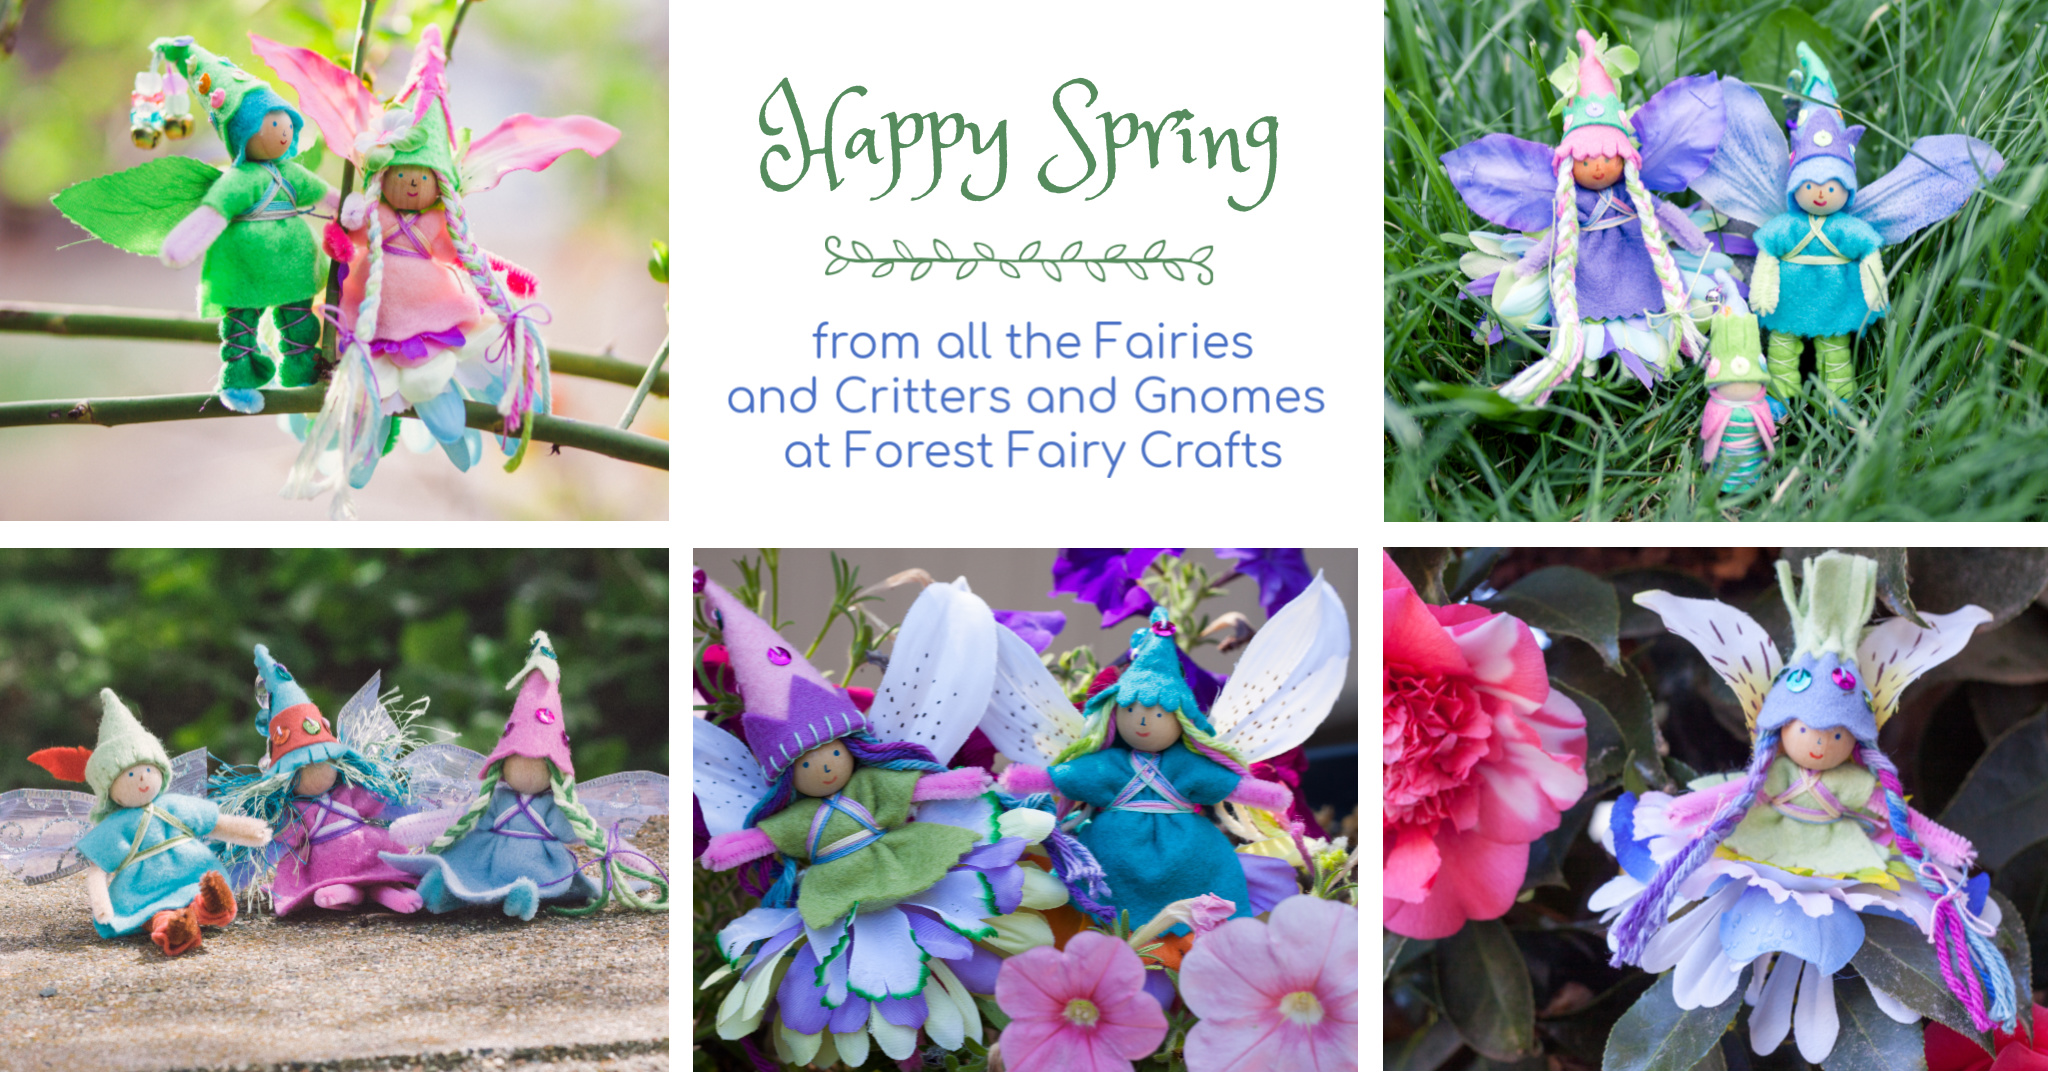 Happy Spring from Forest Fairy Crafts